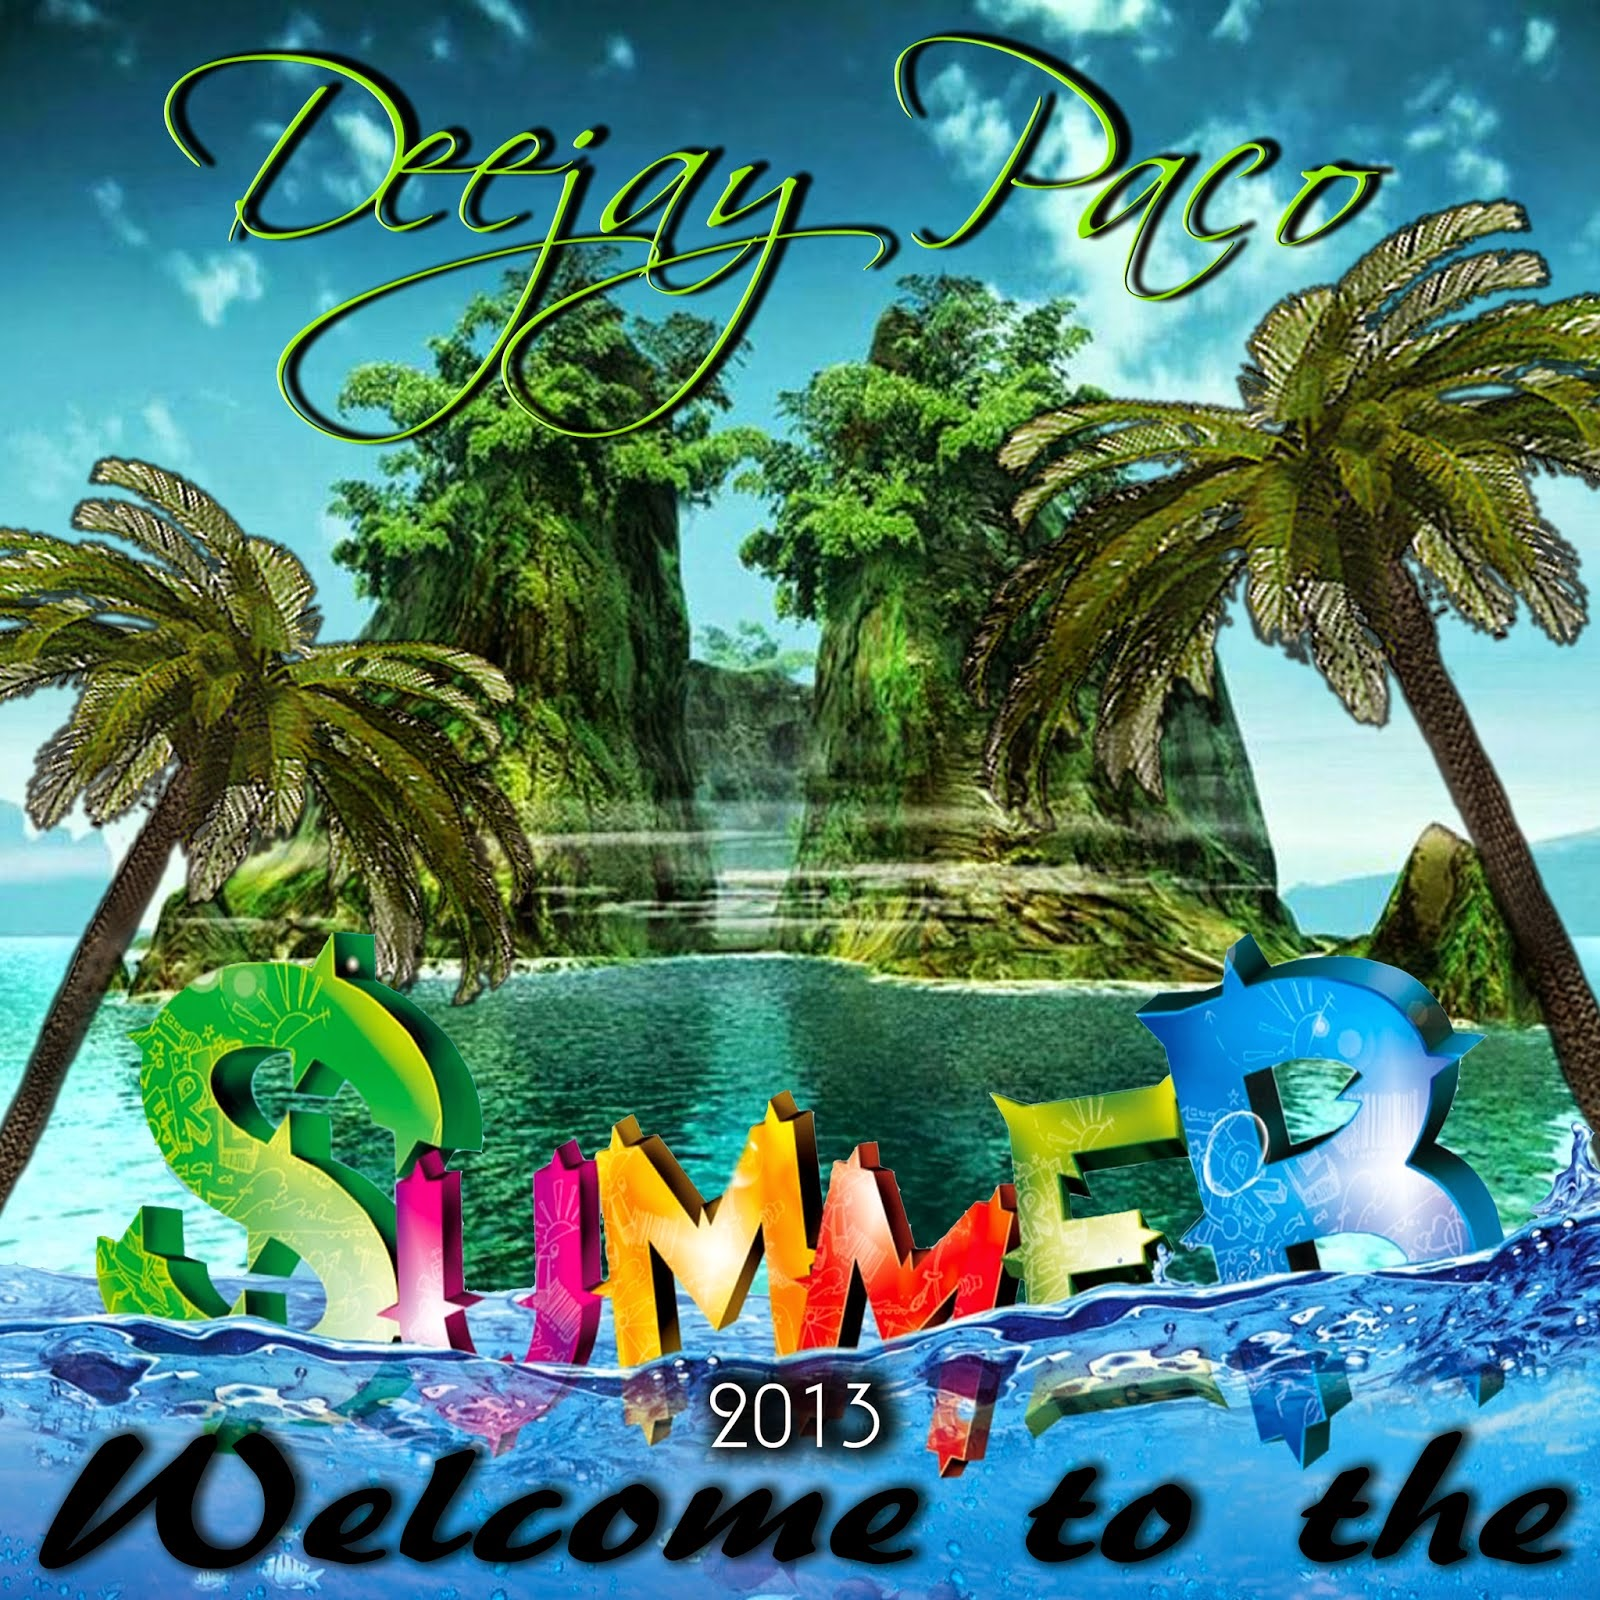 http://www.mediafire.com/download/nljfoblw6ibxrty/Deejay+Paco+Welcome+to+the+Summer+2013.rar